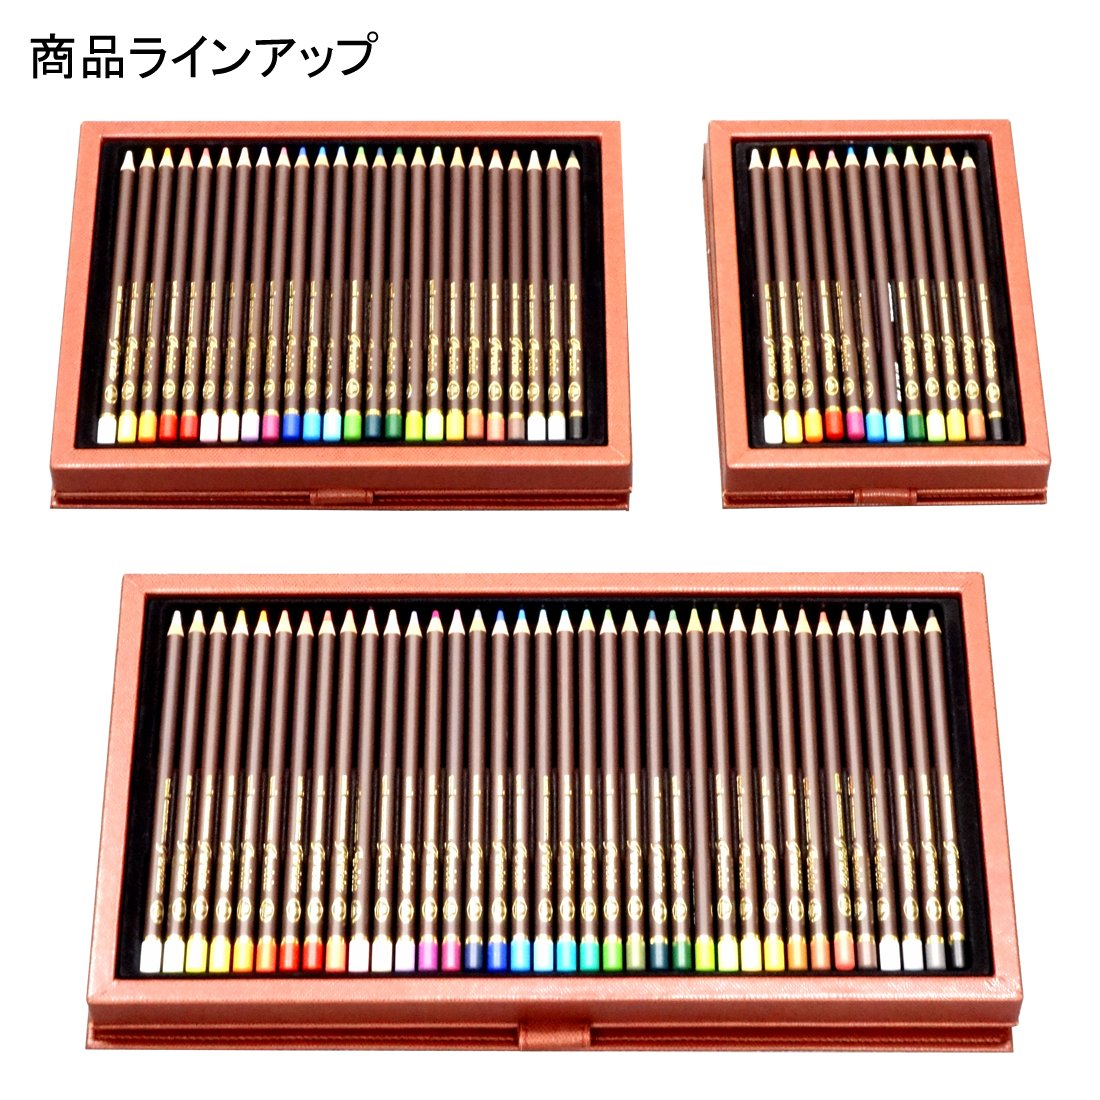 Mitsubishi Pencil Co., Ltd. colored pencil Uni colored pencil Perishia 12 colors set UCPPLC36C by Mitsubishi Pencil Co., Ltd. (Image #9)